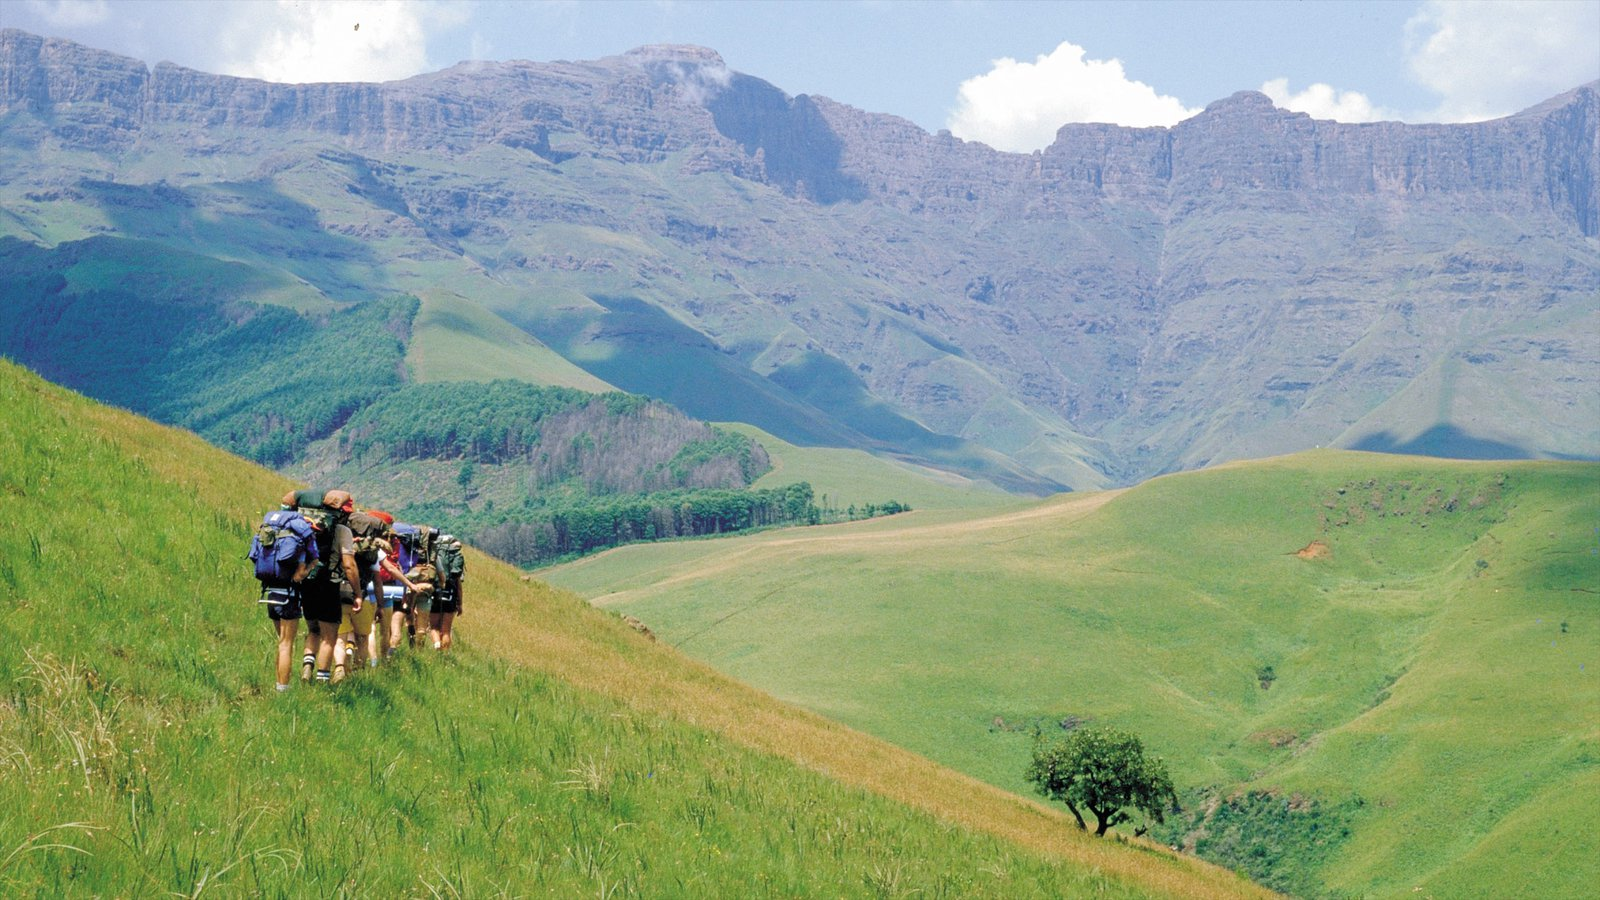 44720-Drakensberg-Mountains.jpg